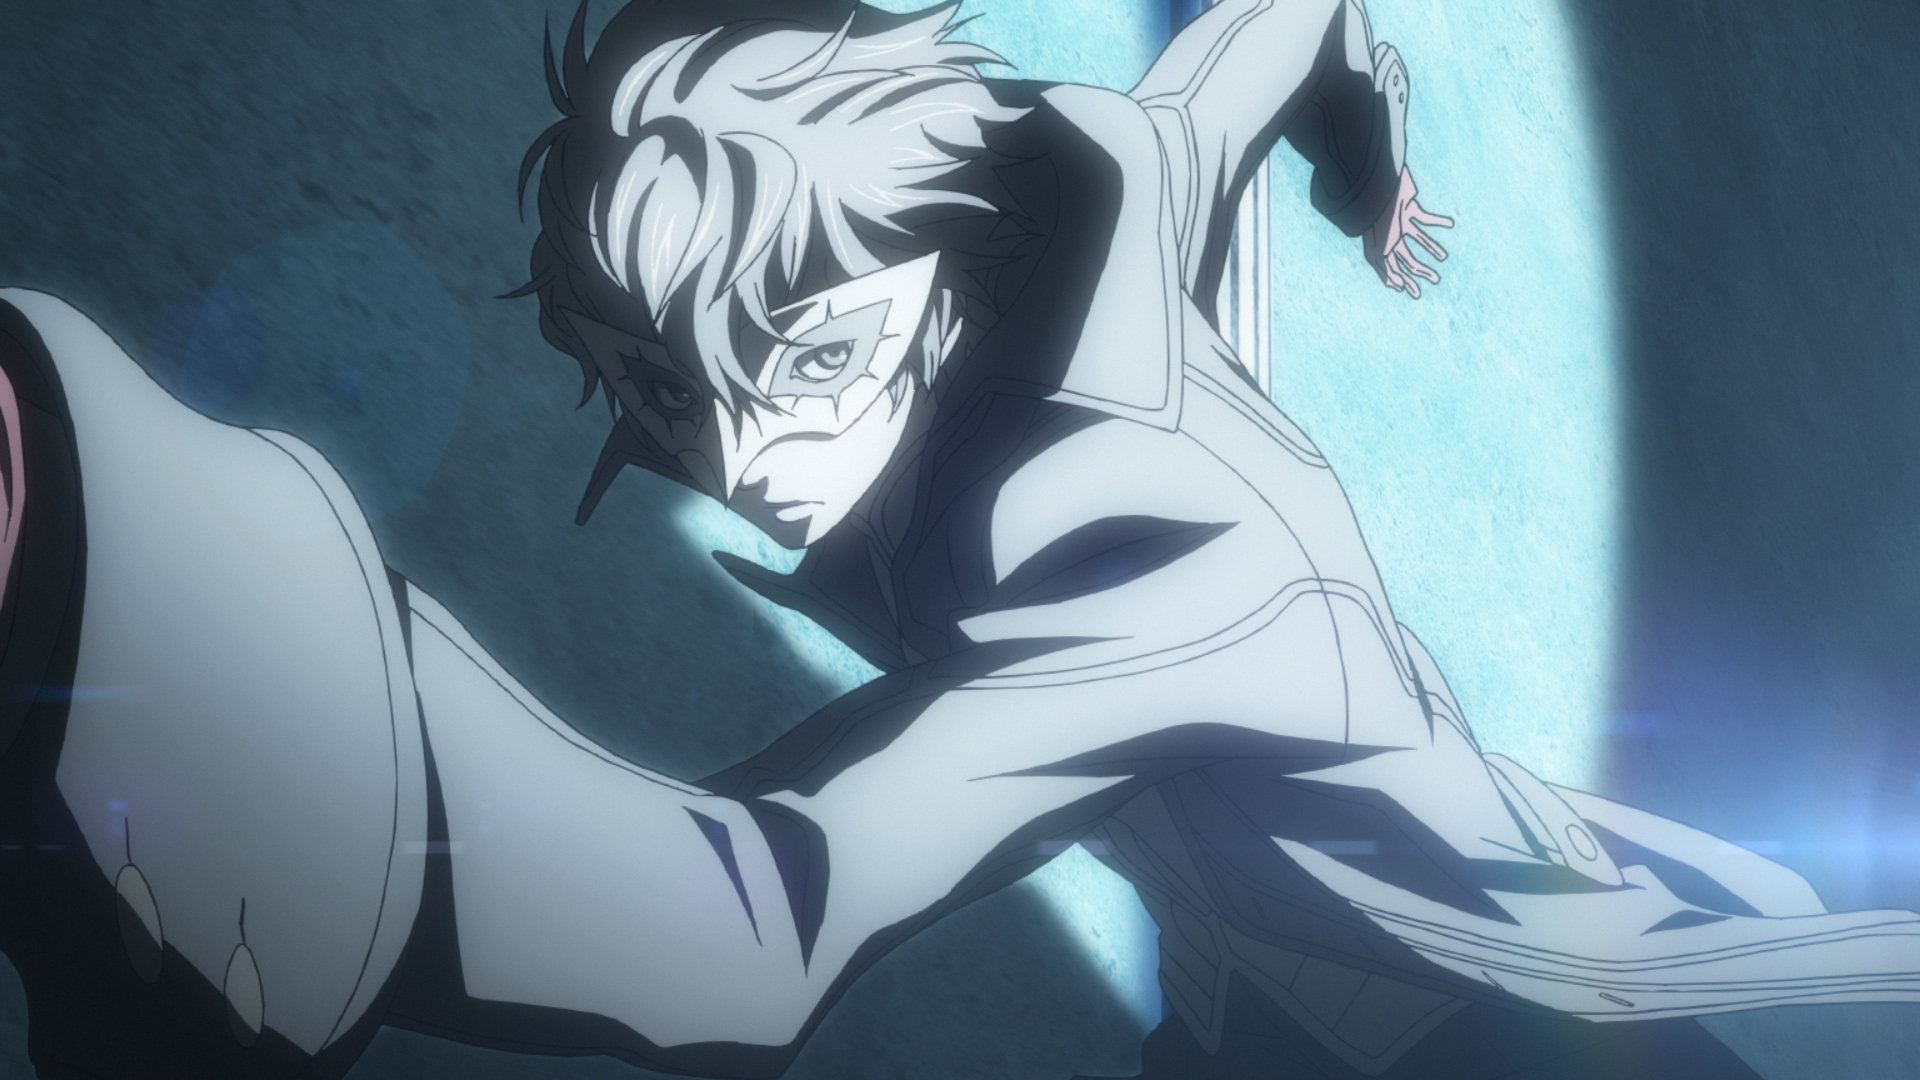 A Persona 5 Manga Will Appear on Store Shelves Next Year